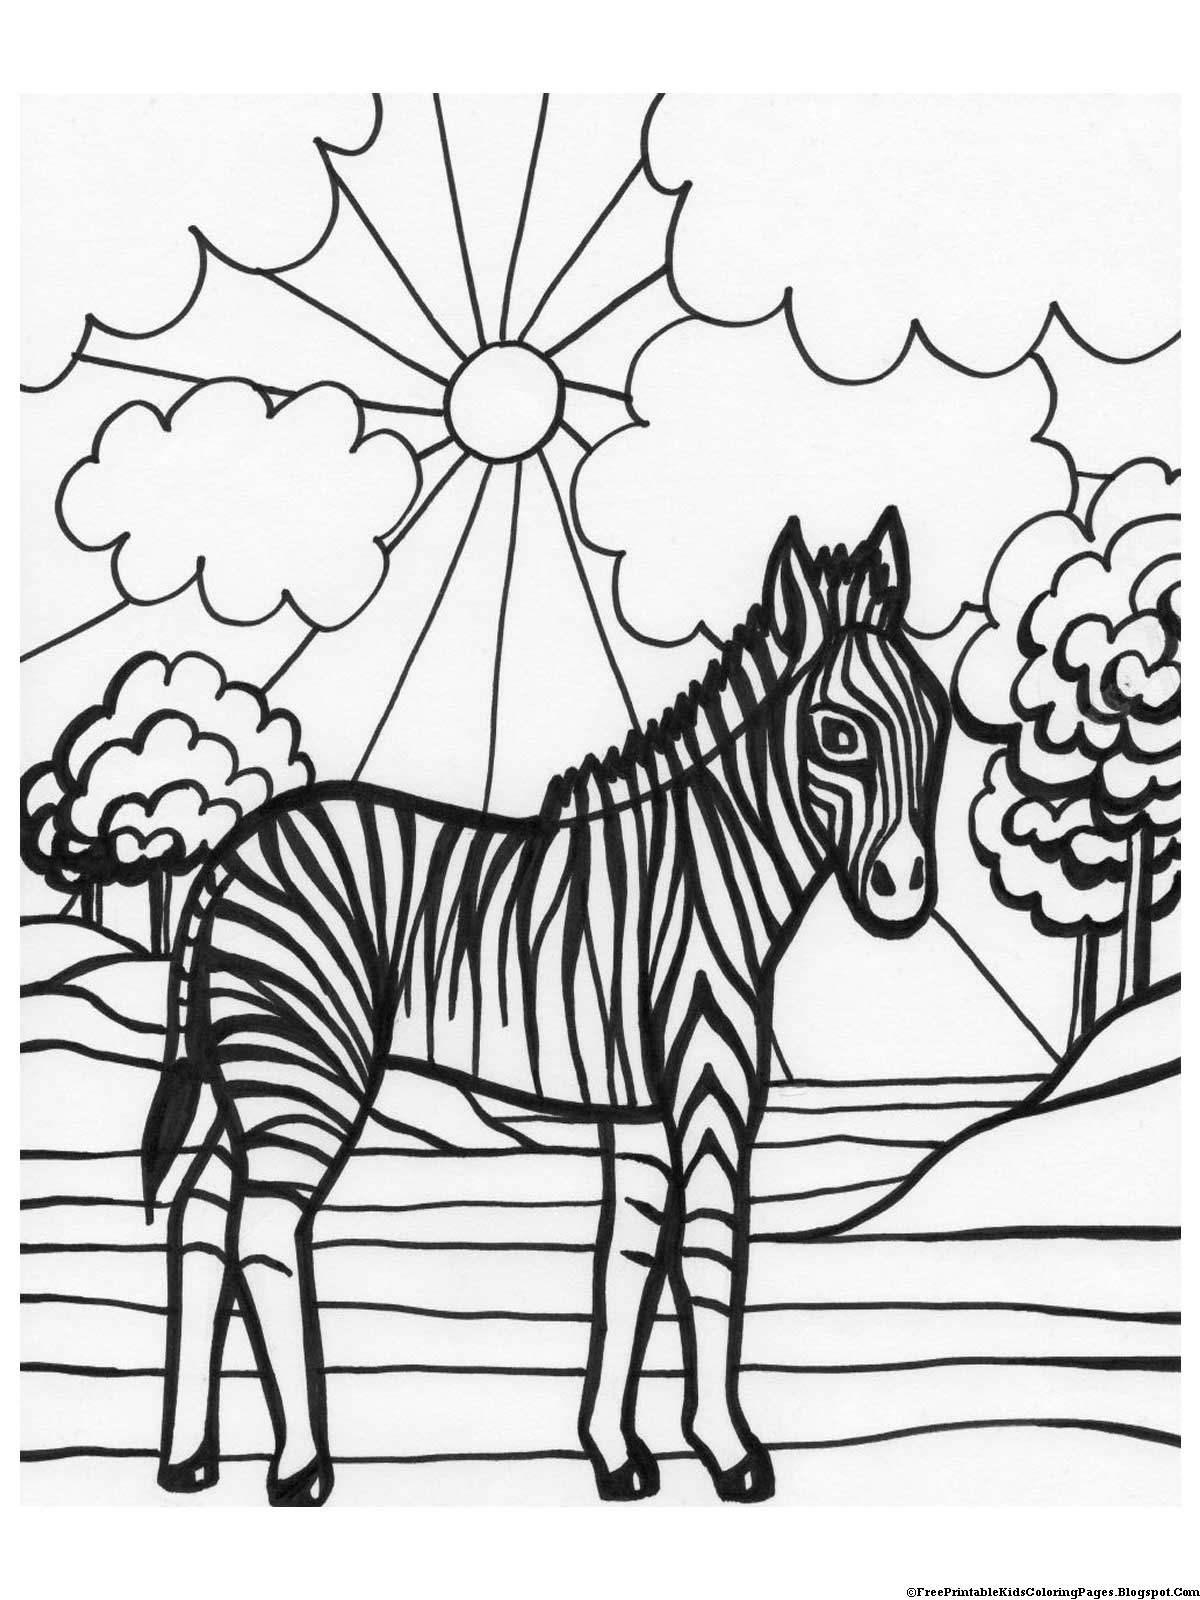 coloring pages for kids to print kids page butterfly coloring pages printable colouring print coloring kids to pages for